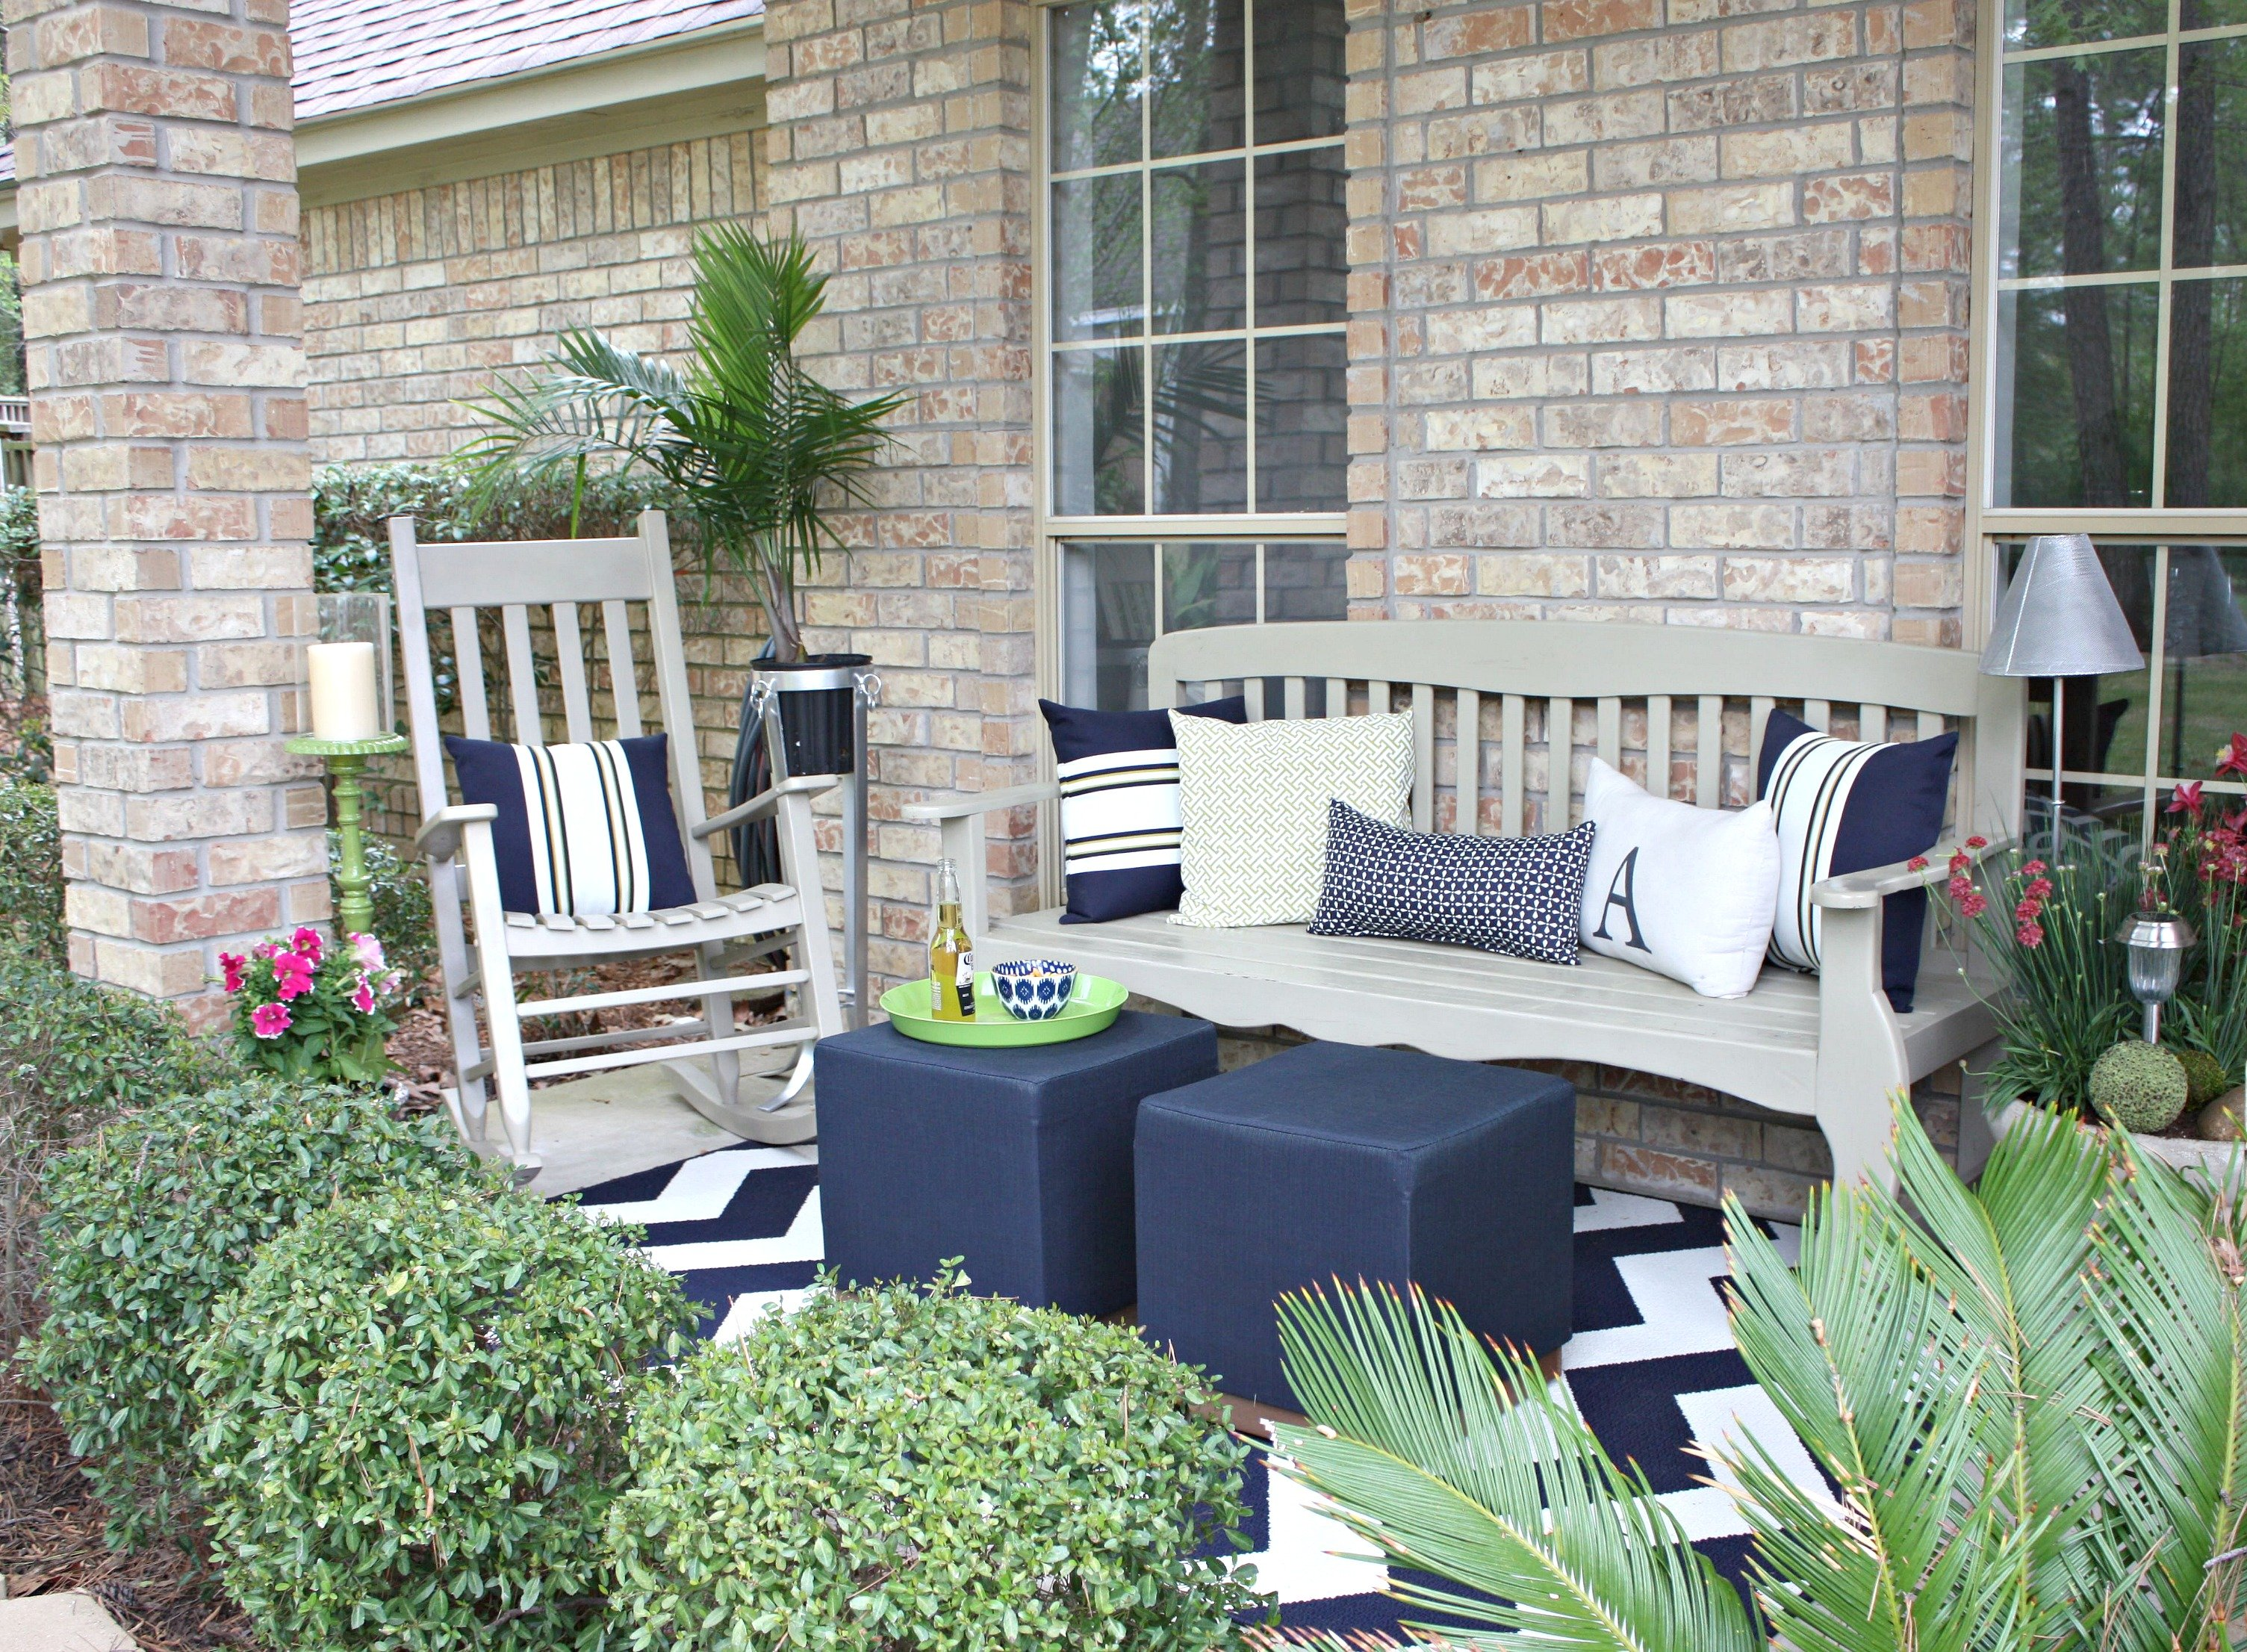 Painting Outdoor Furniture And Accessories - Painting outdoor furniture